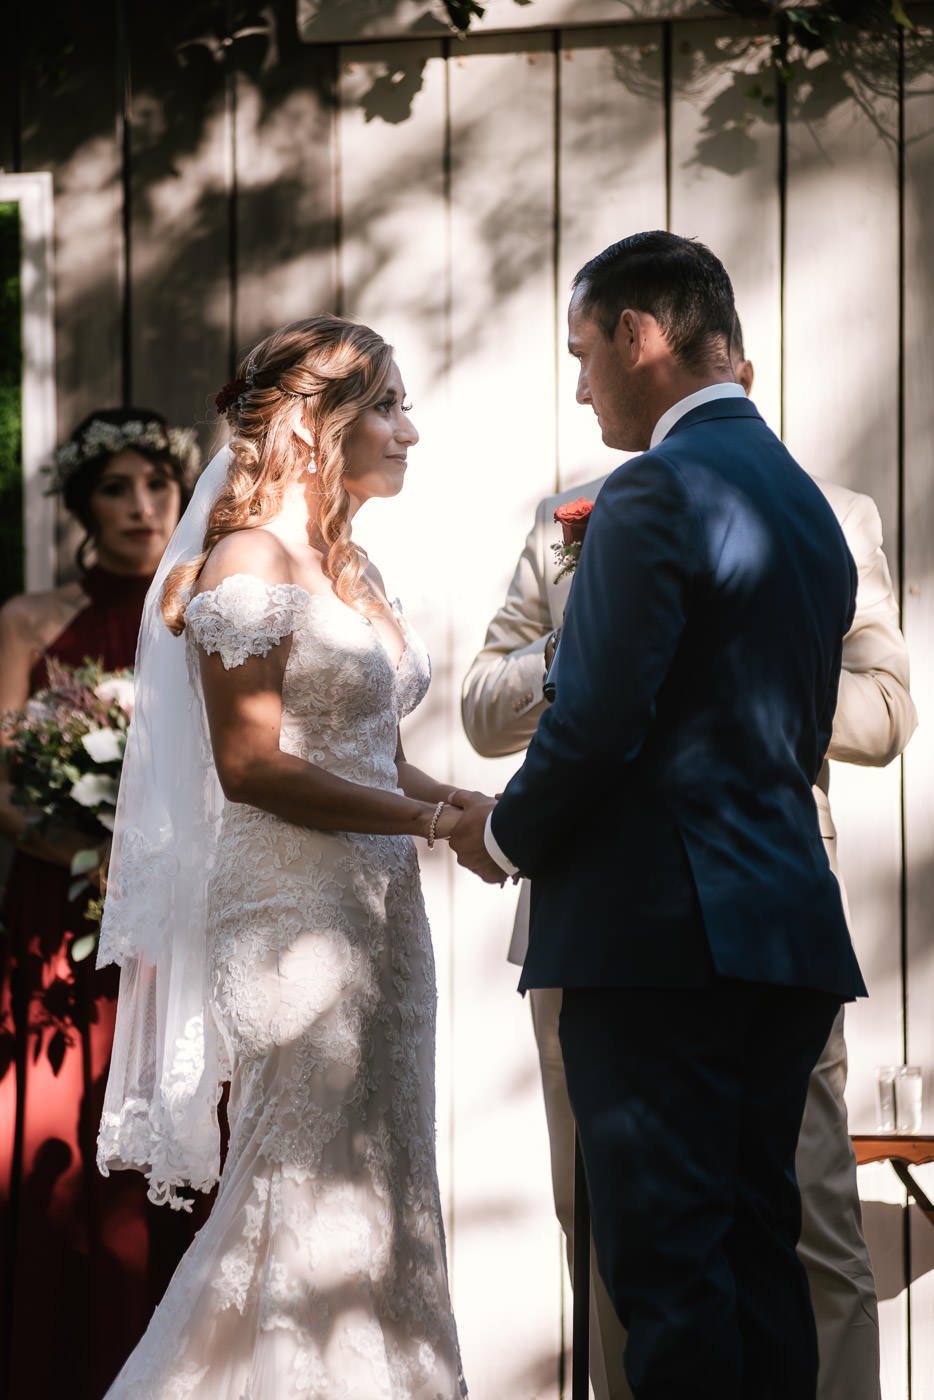 Bride looks into her grooms eyes as they say their marriage vows.